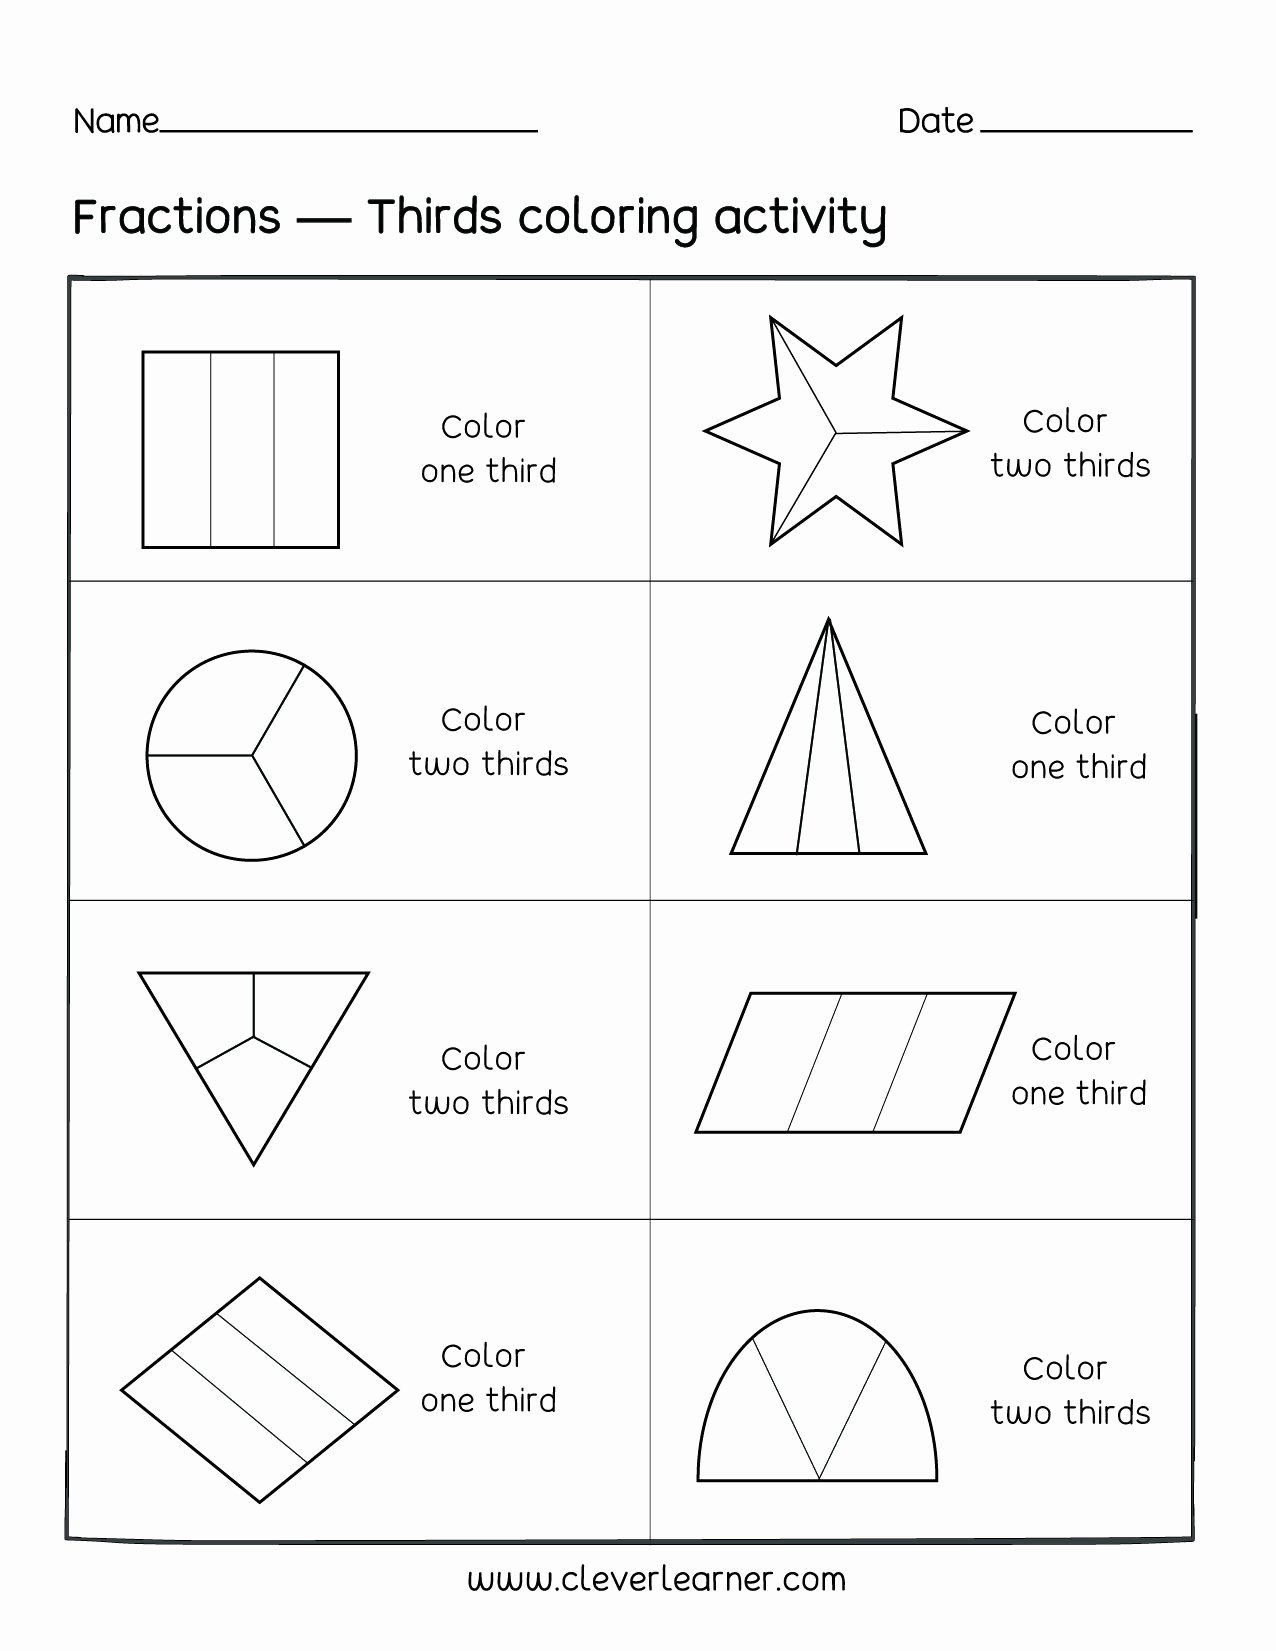 Fraction Worksheets for Preschoolers Beautiful Fractionng Sheets Thirds Fractions Worksheets Fun Activity